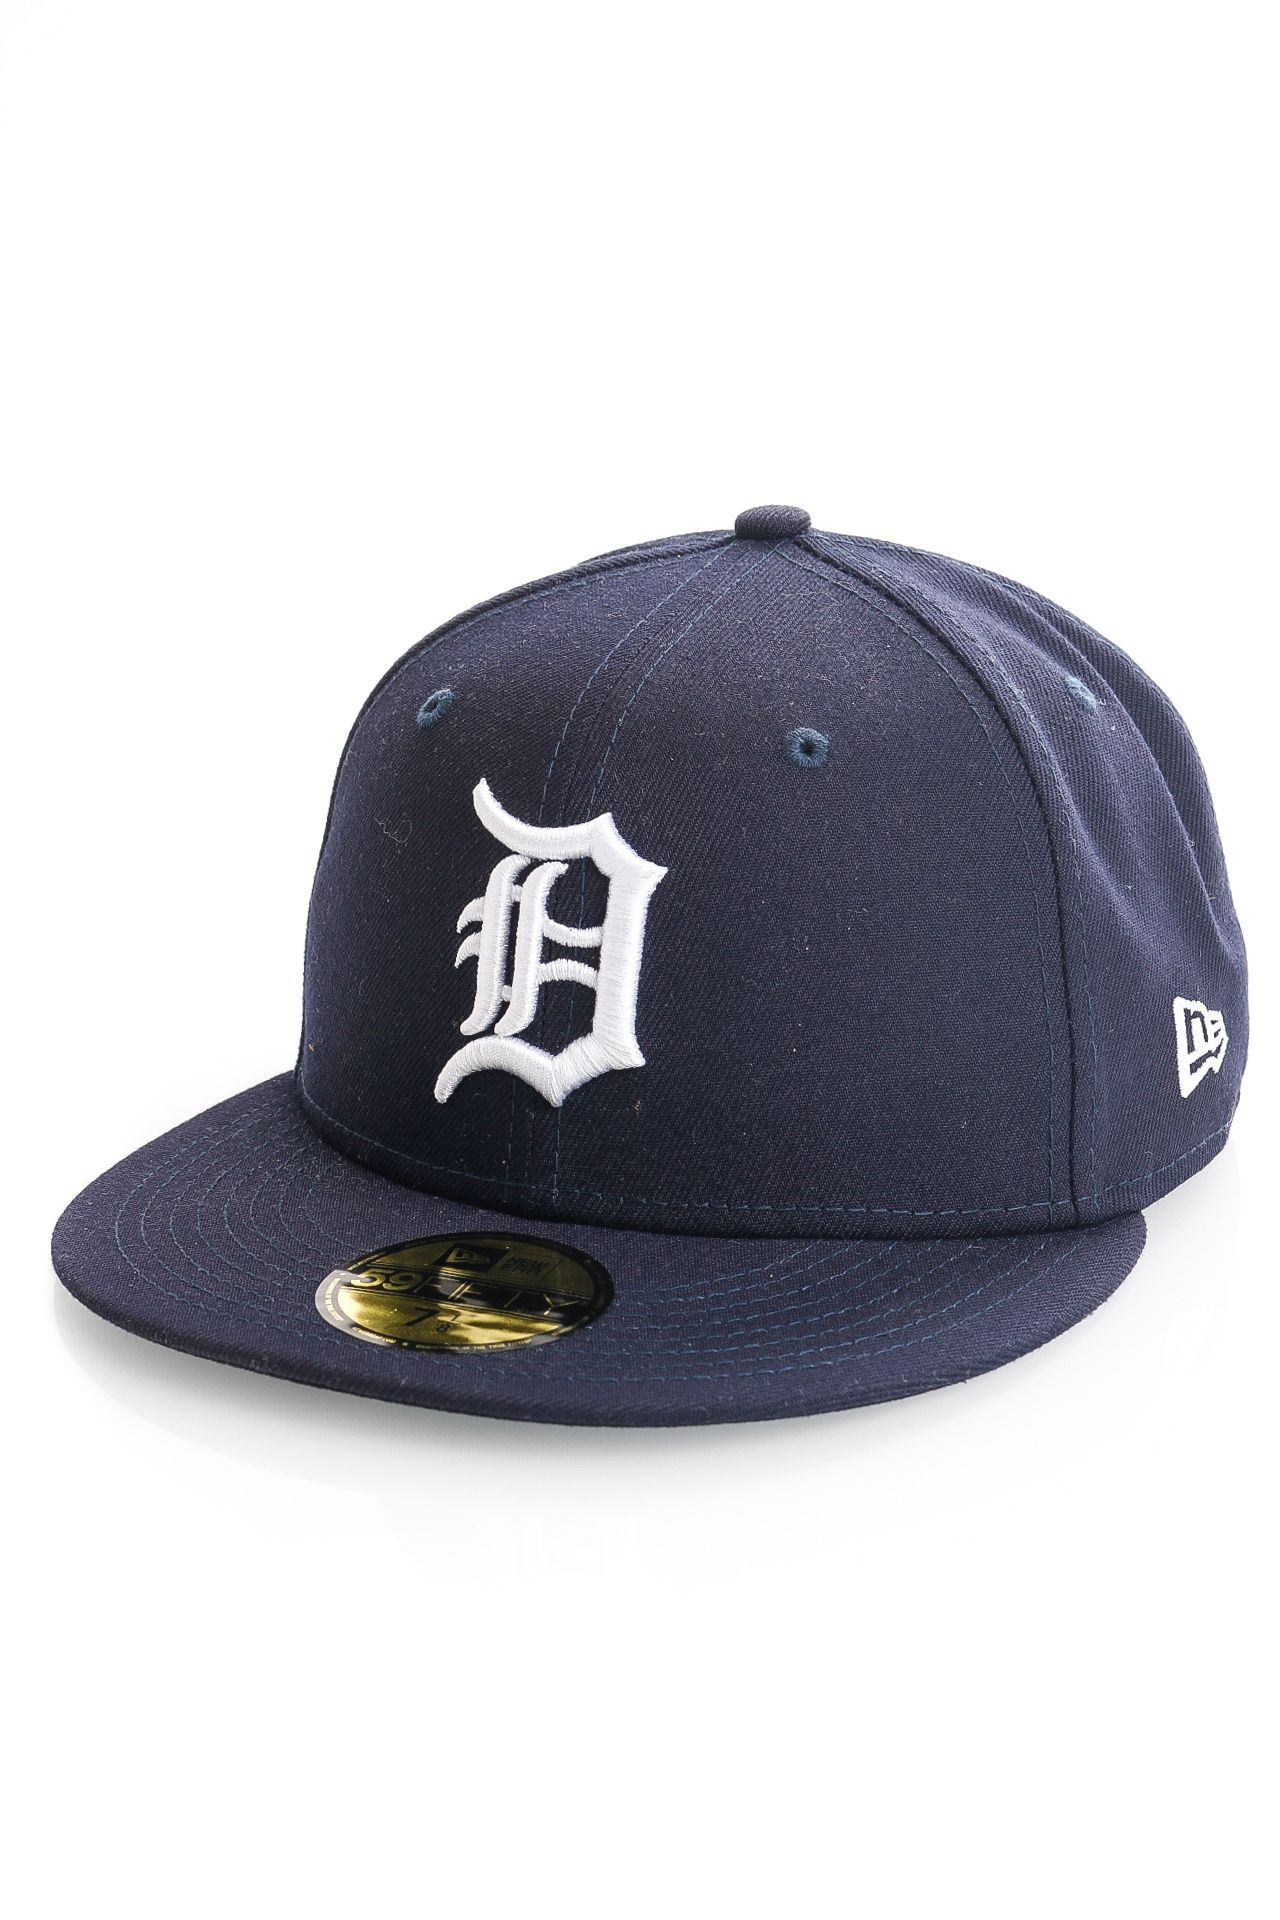 Afbeelding van New Era Detroit Tigers Fitted Cap MLB AC PERF 59FIFTY Navy/White 12572844